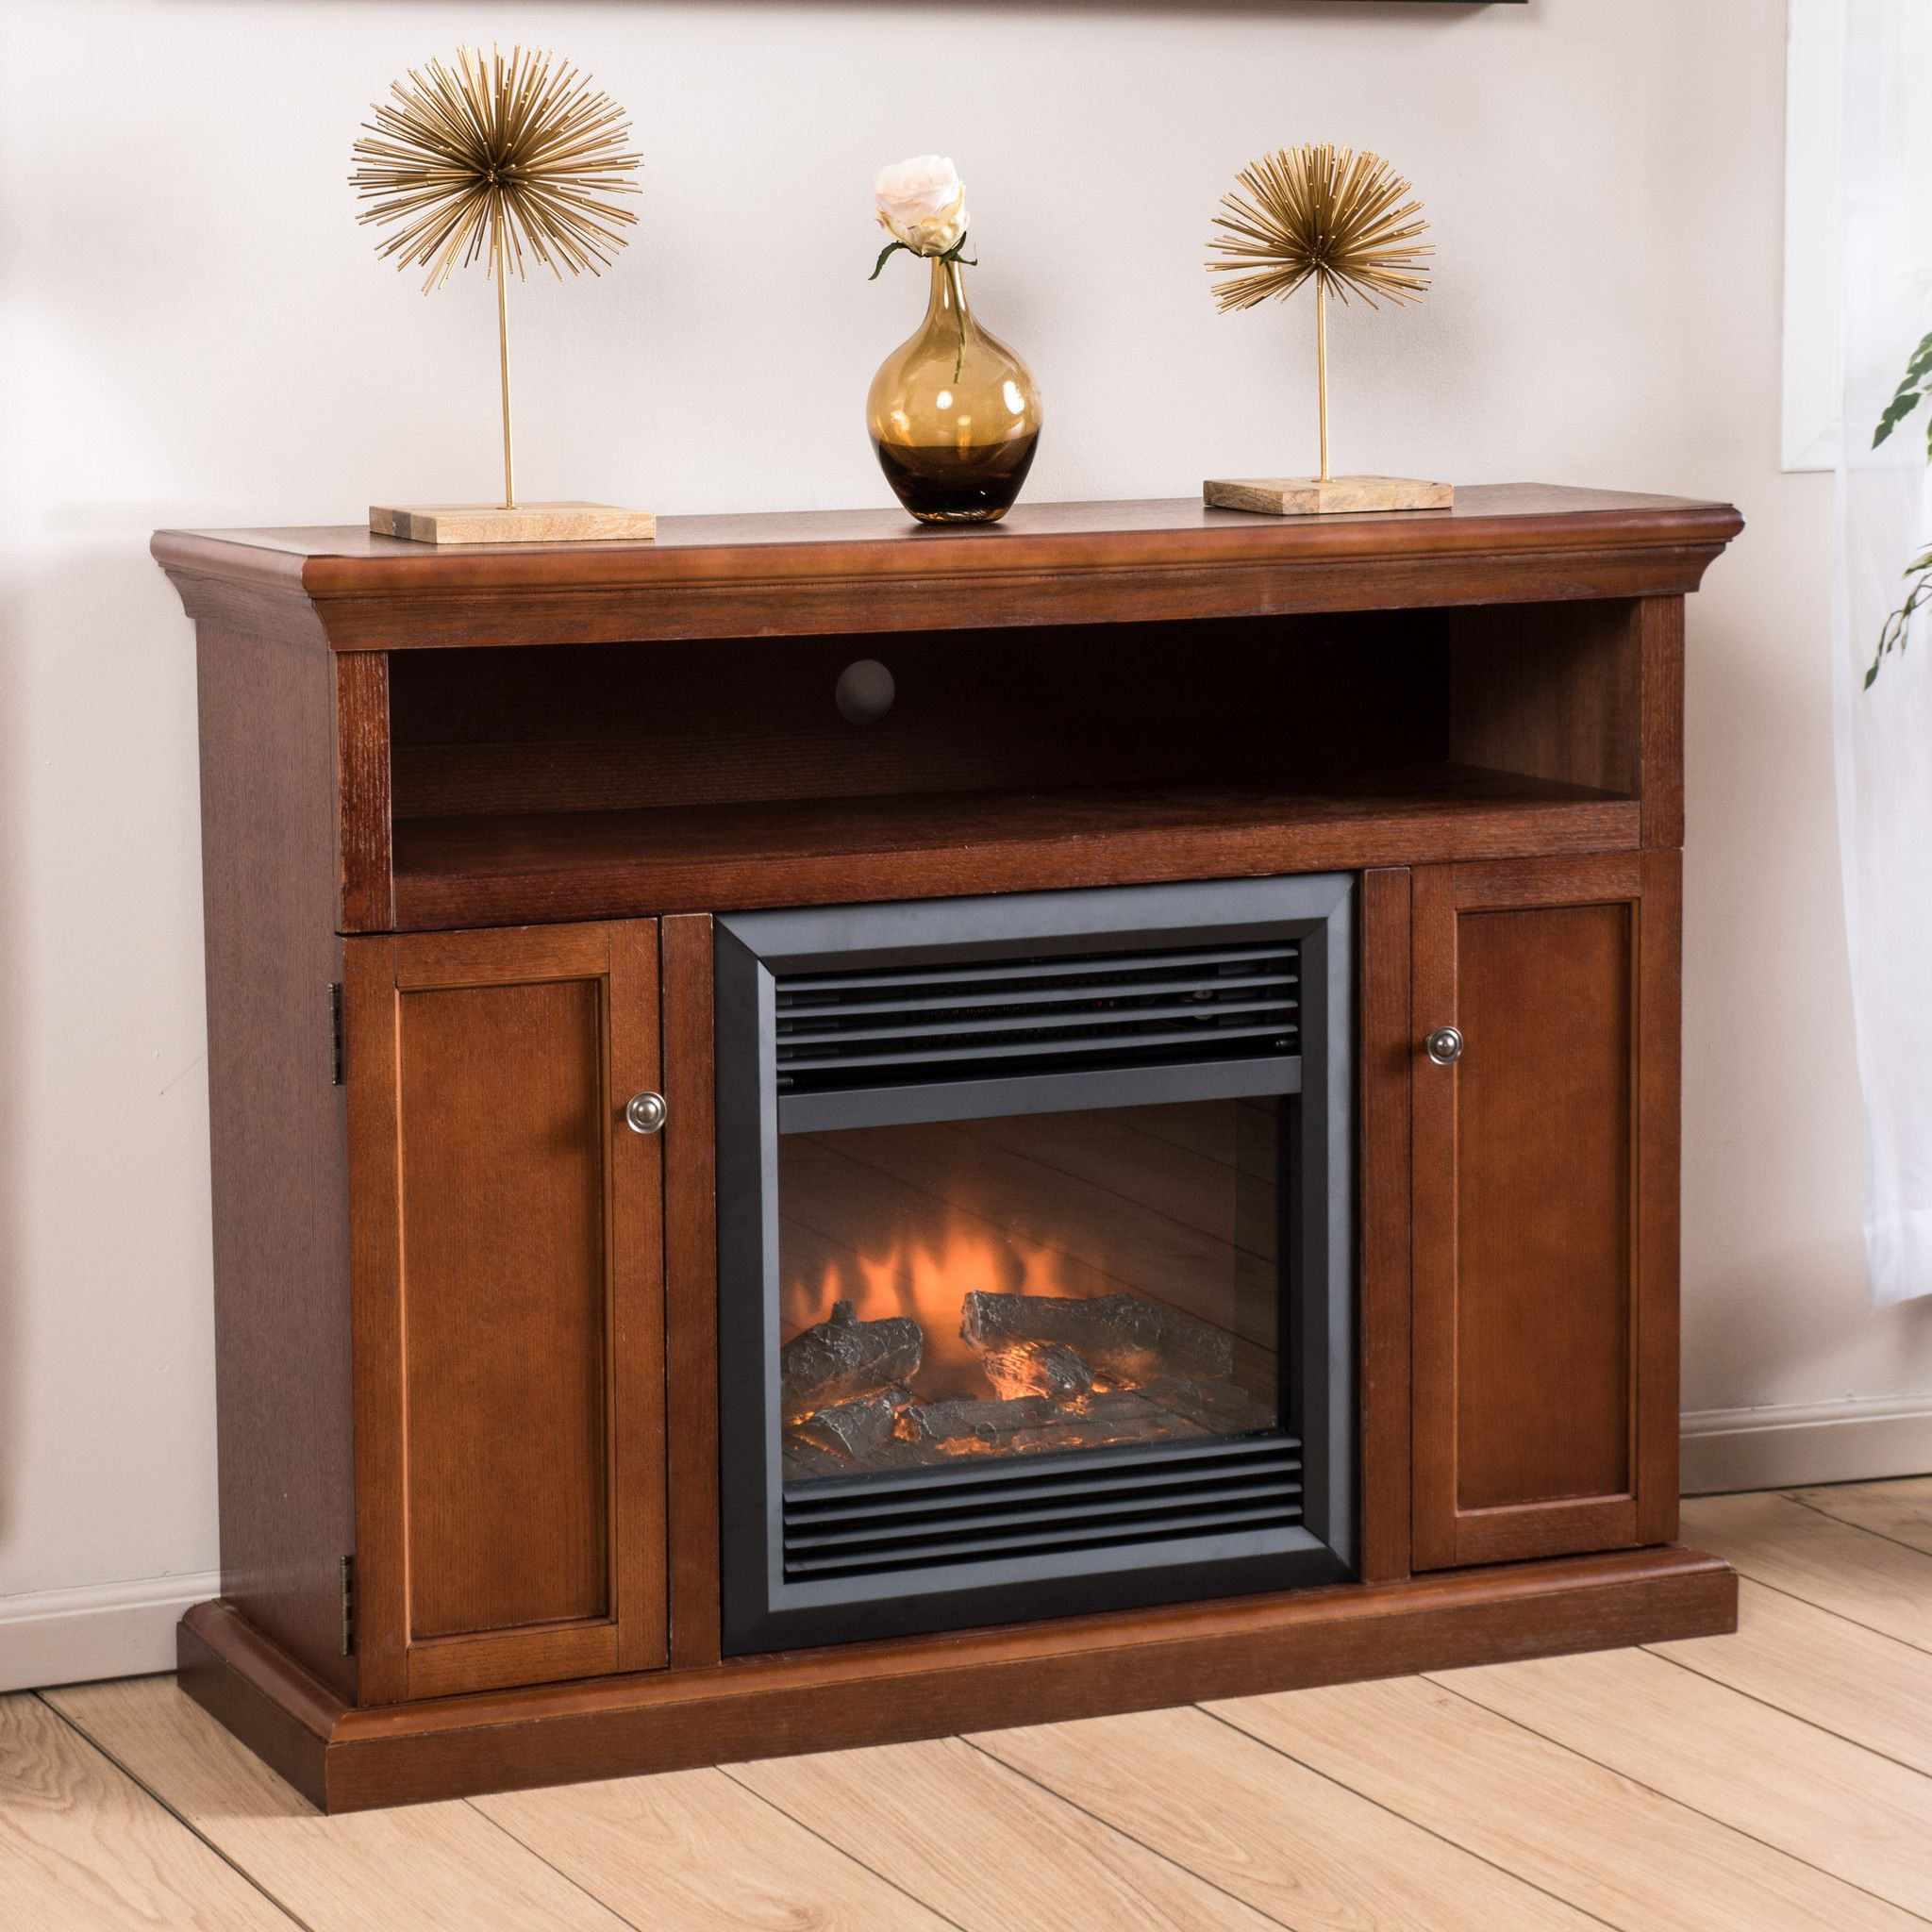 ferris electric fireplace media console mantel with remote control